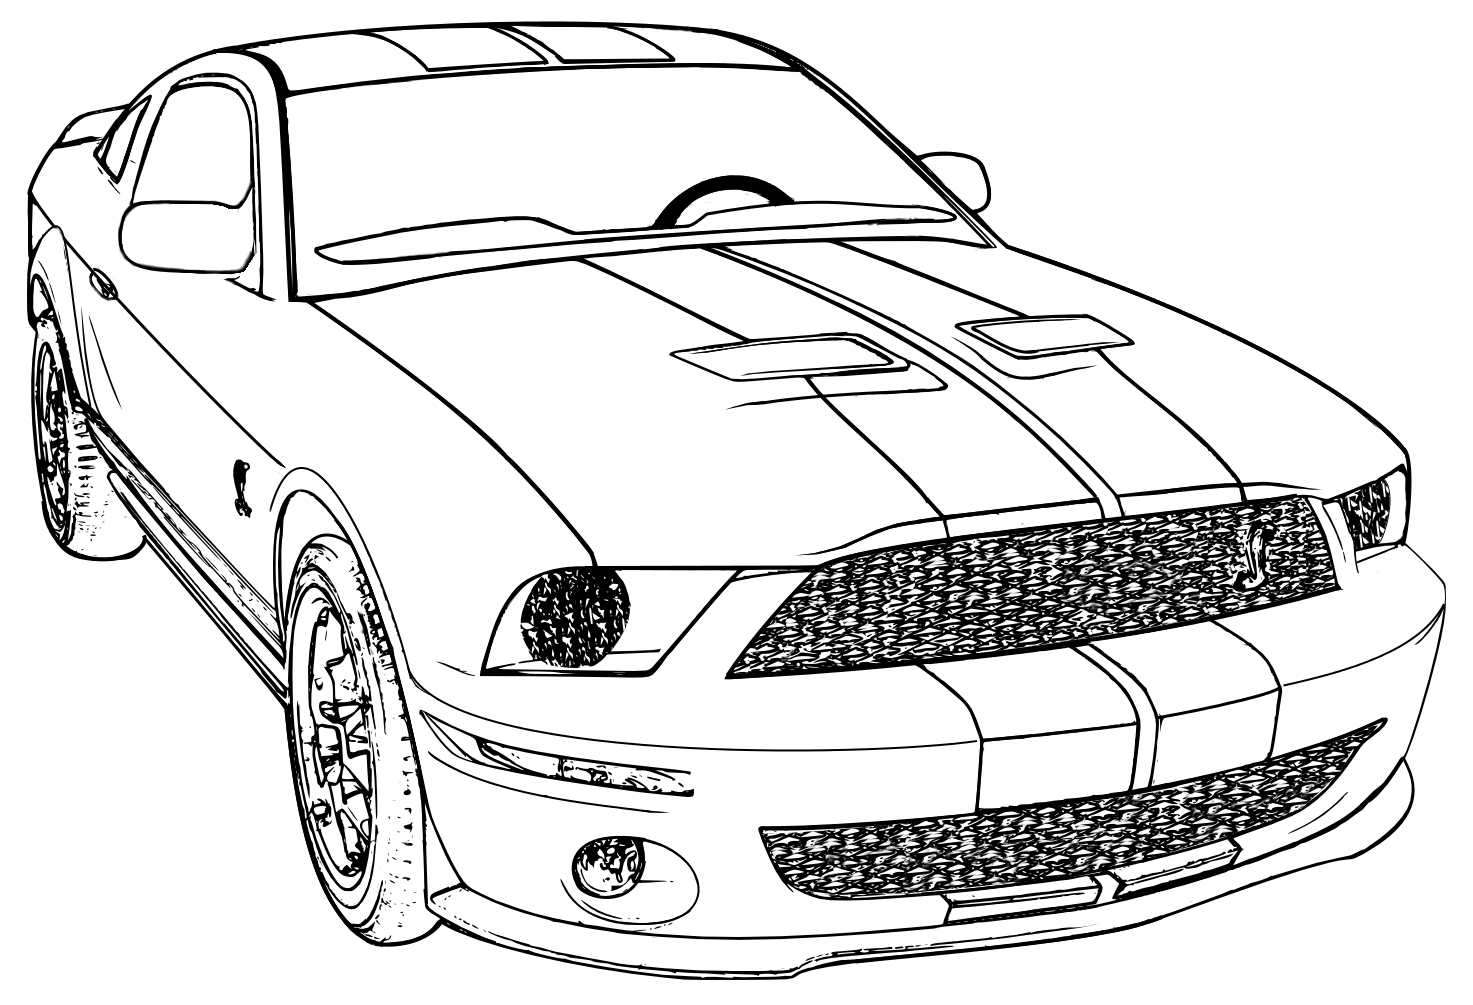 coloring picture of car doc hudson coloring pages download and print for free coloring of picture car